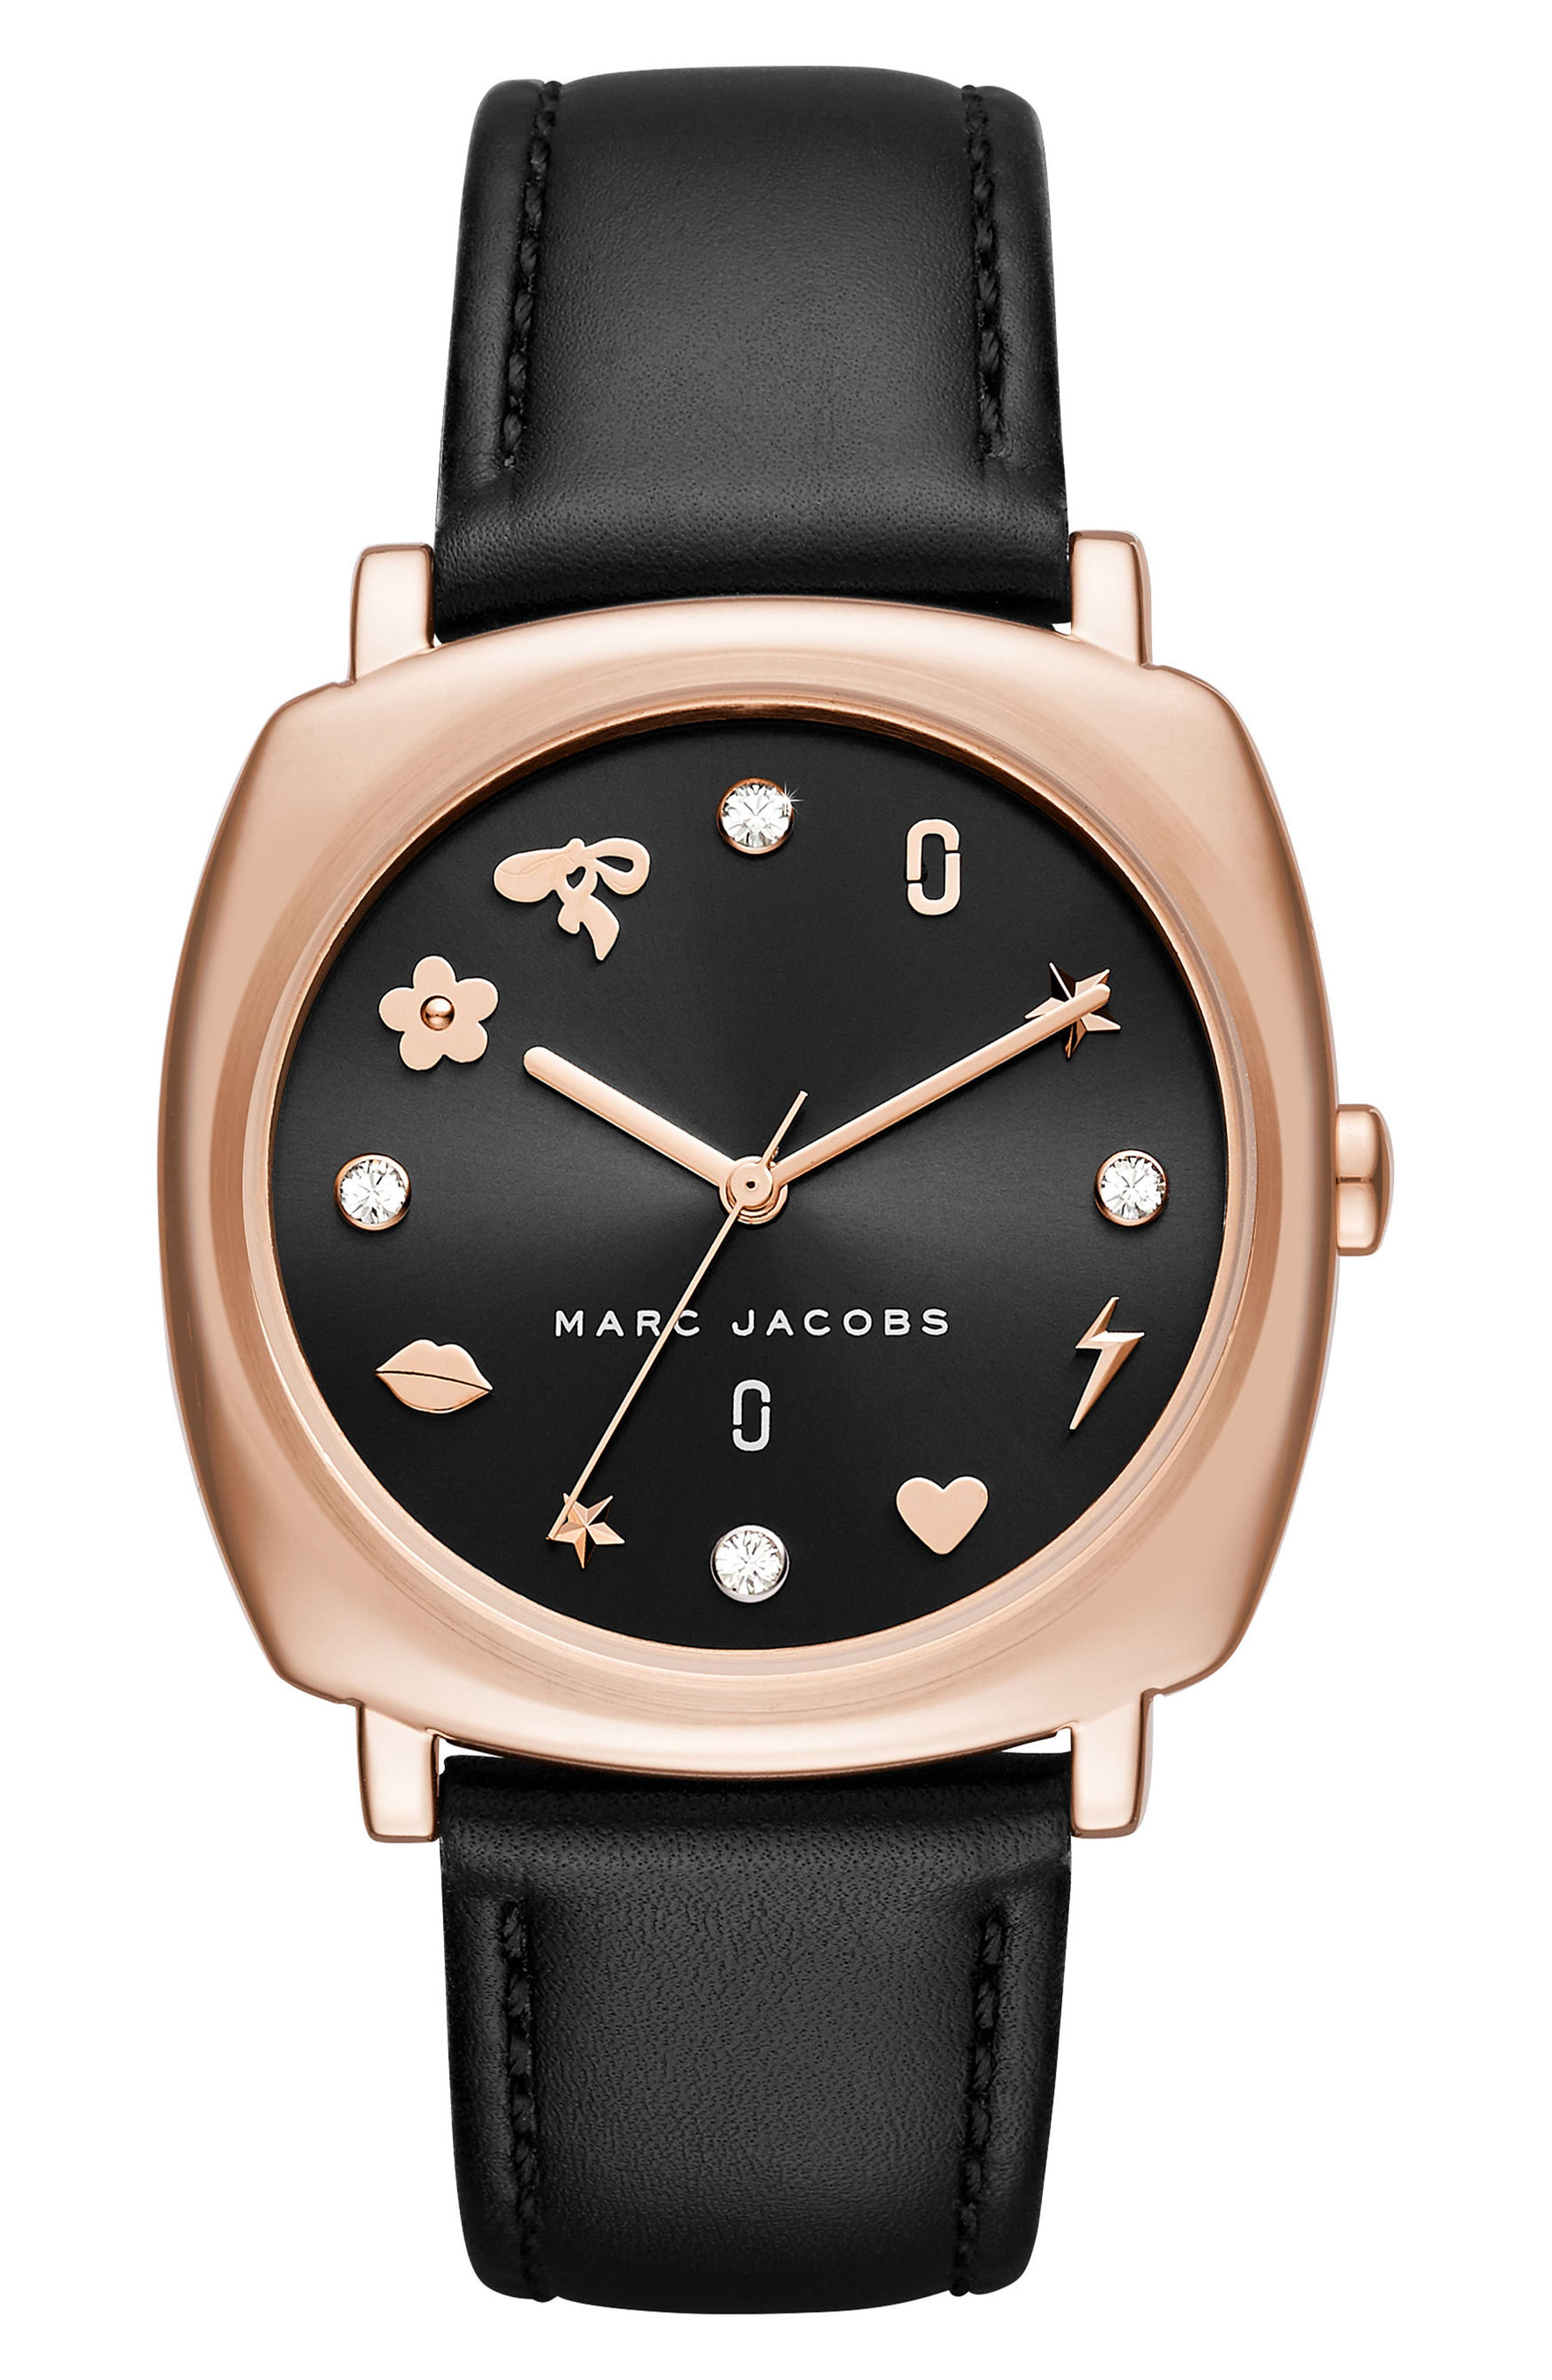 Main Image - MARC JACOBS Mandy Leather Strap Watch, 34mm